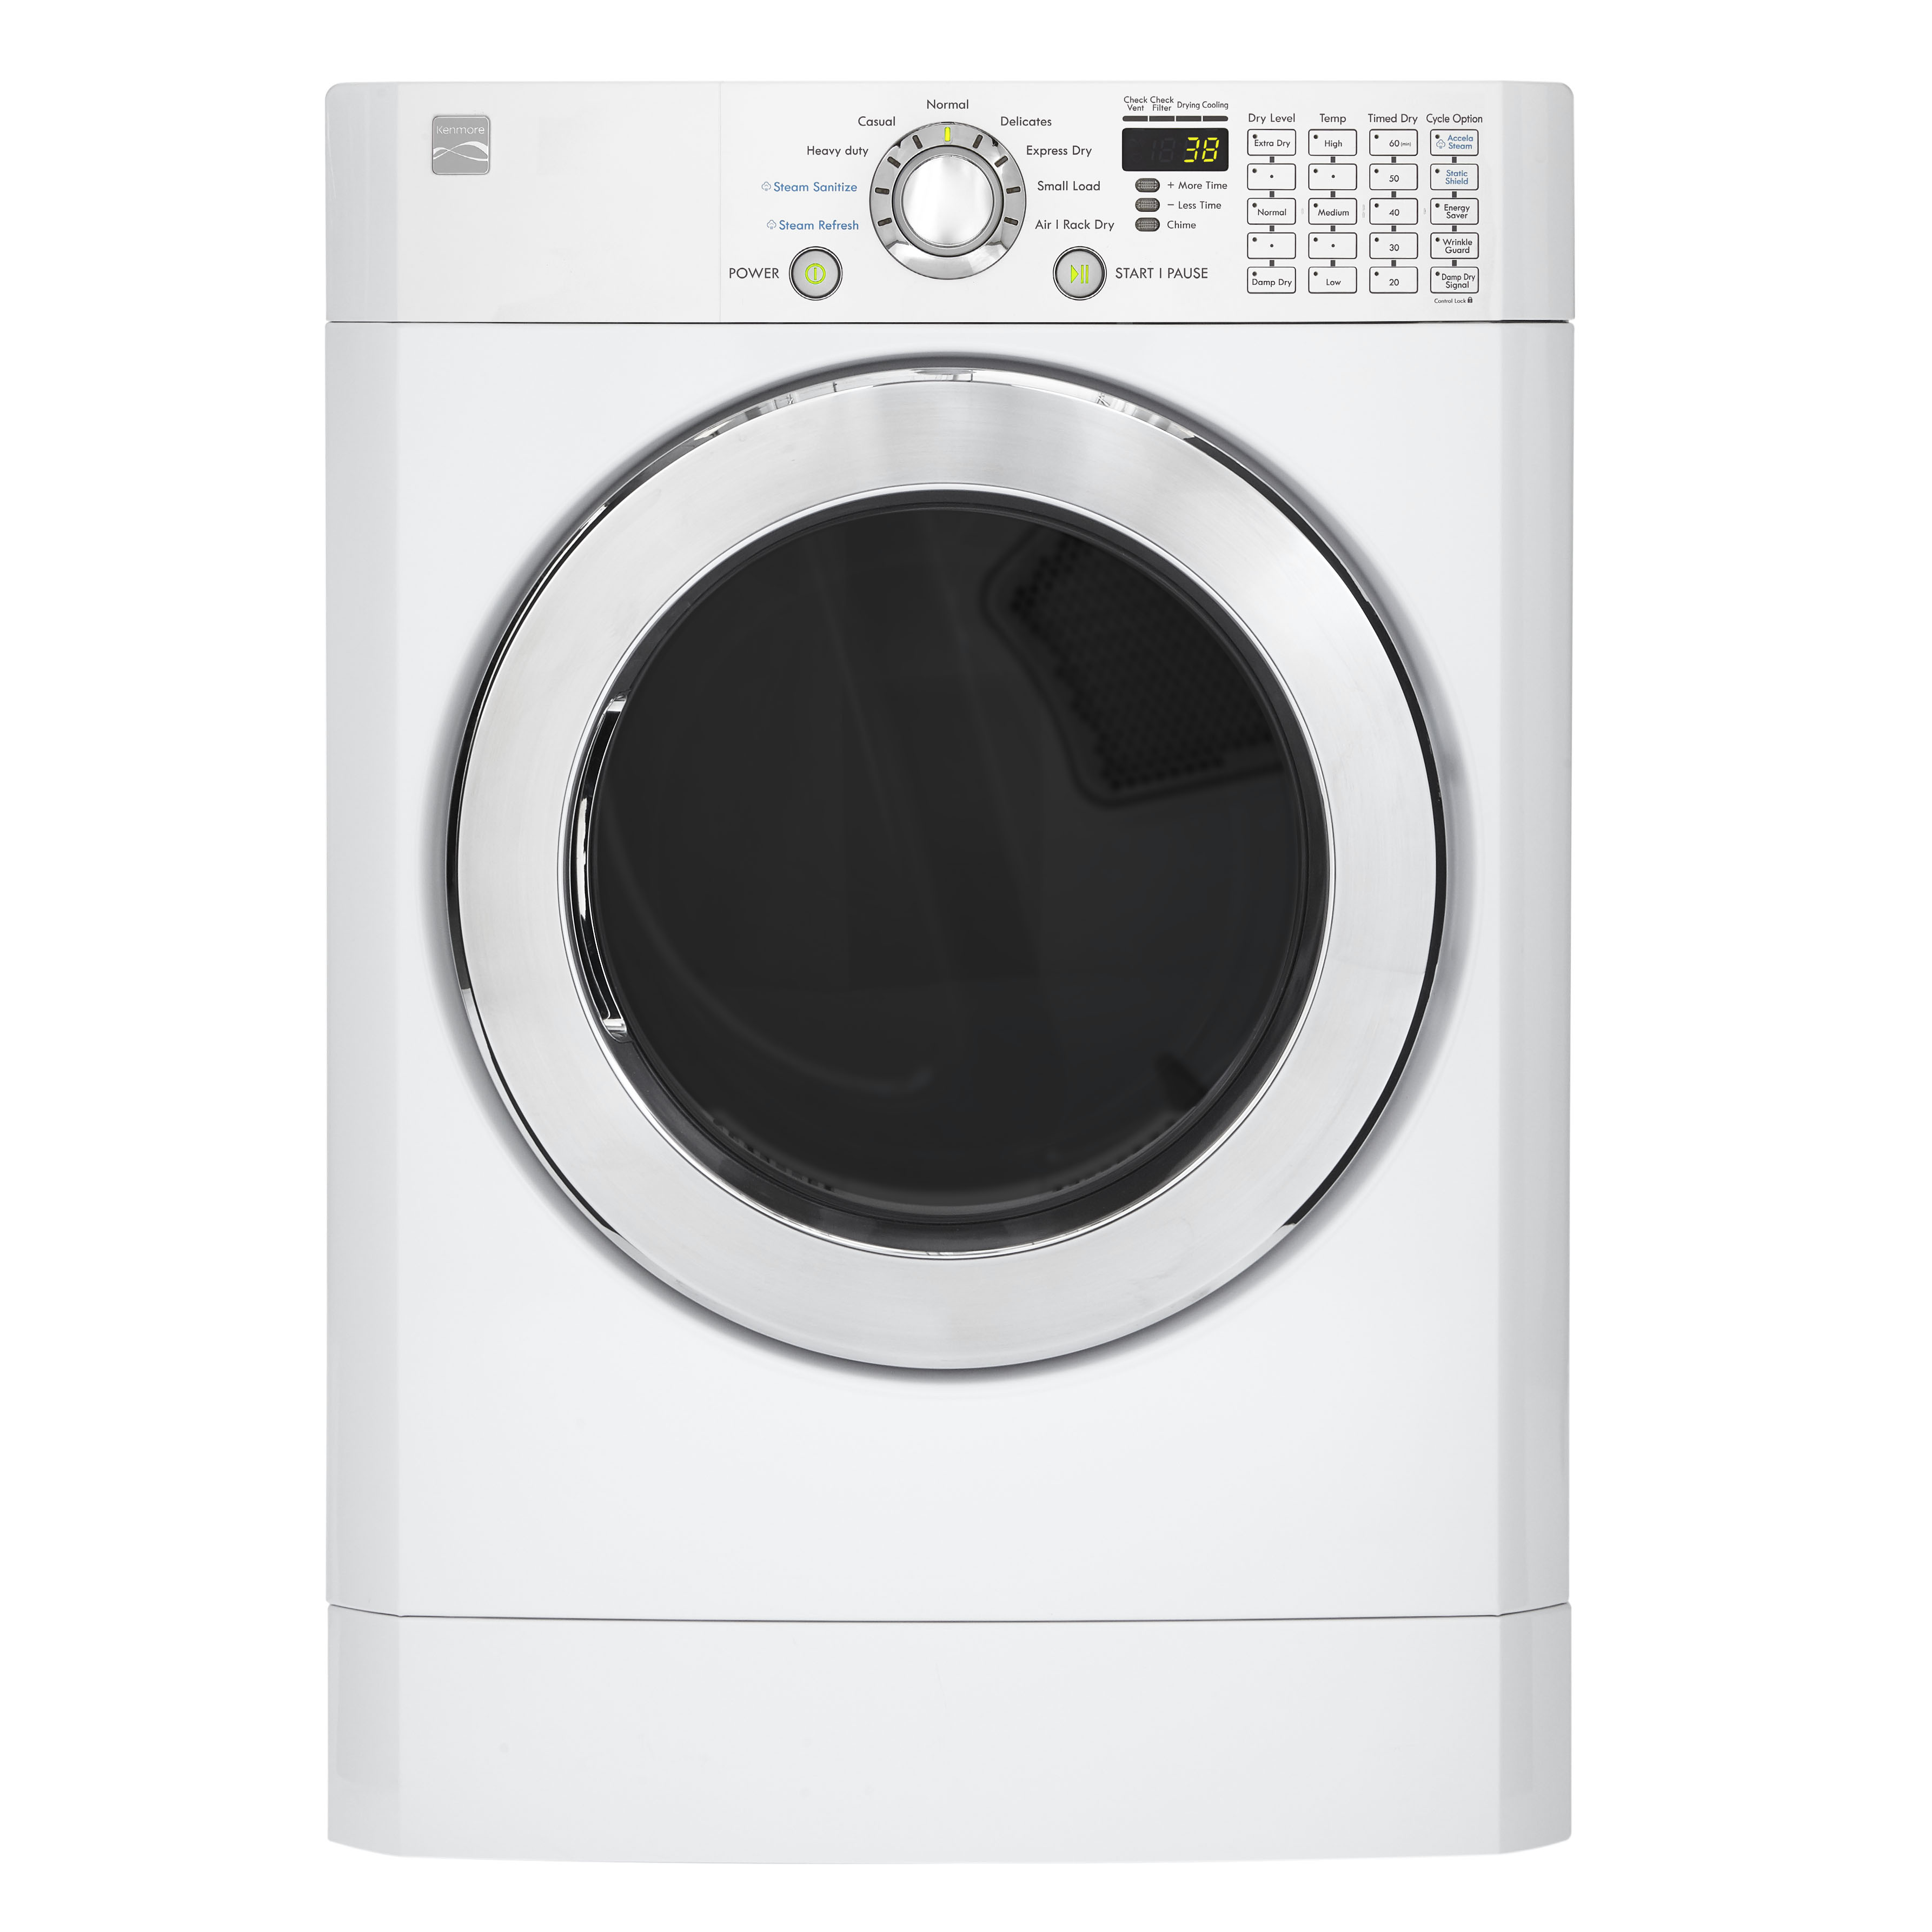 small resolution of kenmore 91392 7 3 cu ft front load flip control gas dryer white gas dryer i d be happy for any sears gas dryer diagram just to